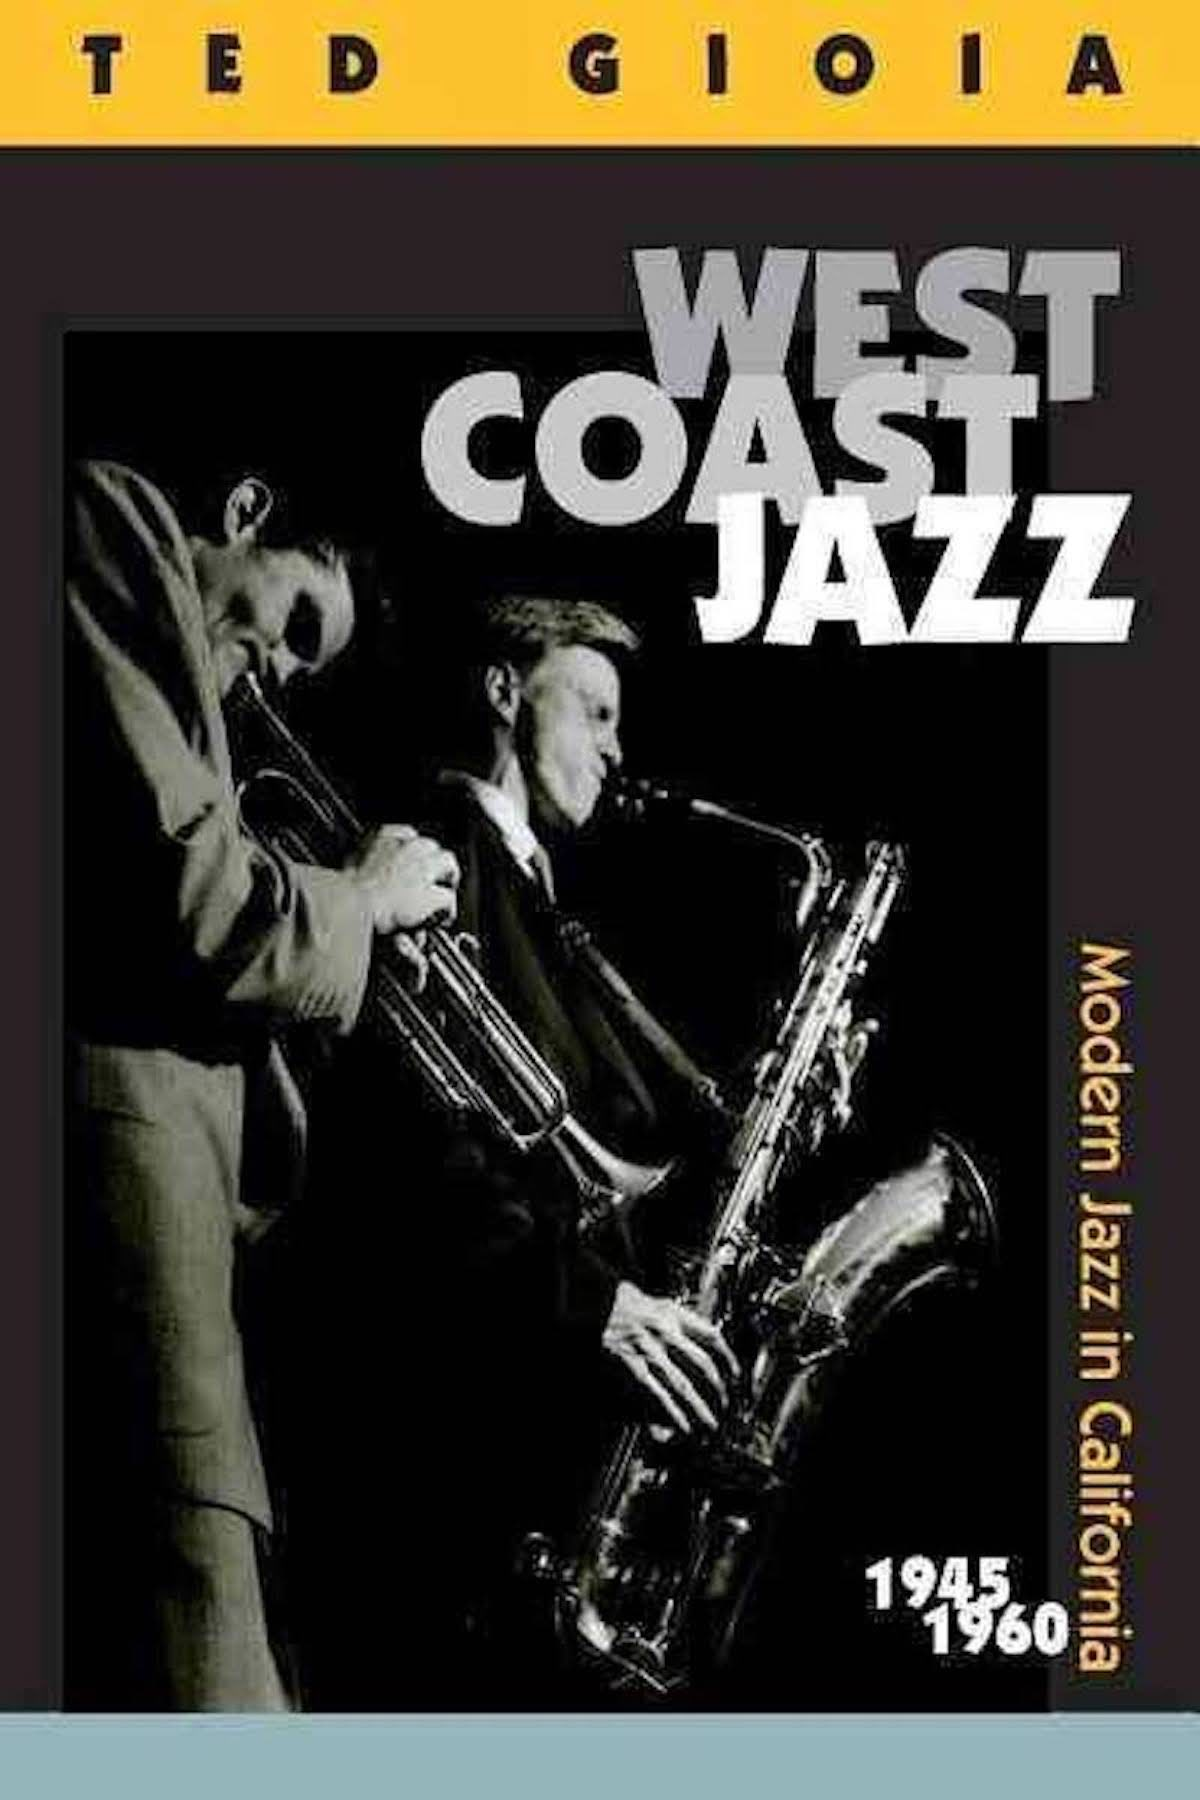 Ted Gioia: West Coast Jazz - Modern Jazz in California (1945-1960) Book Cover